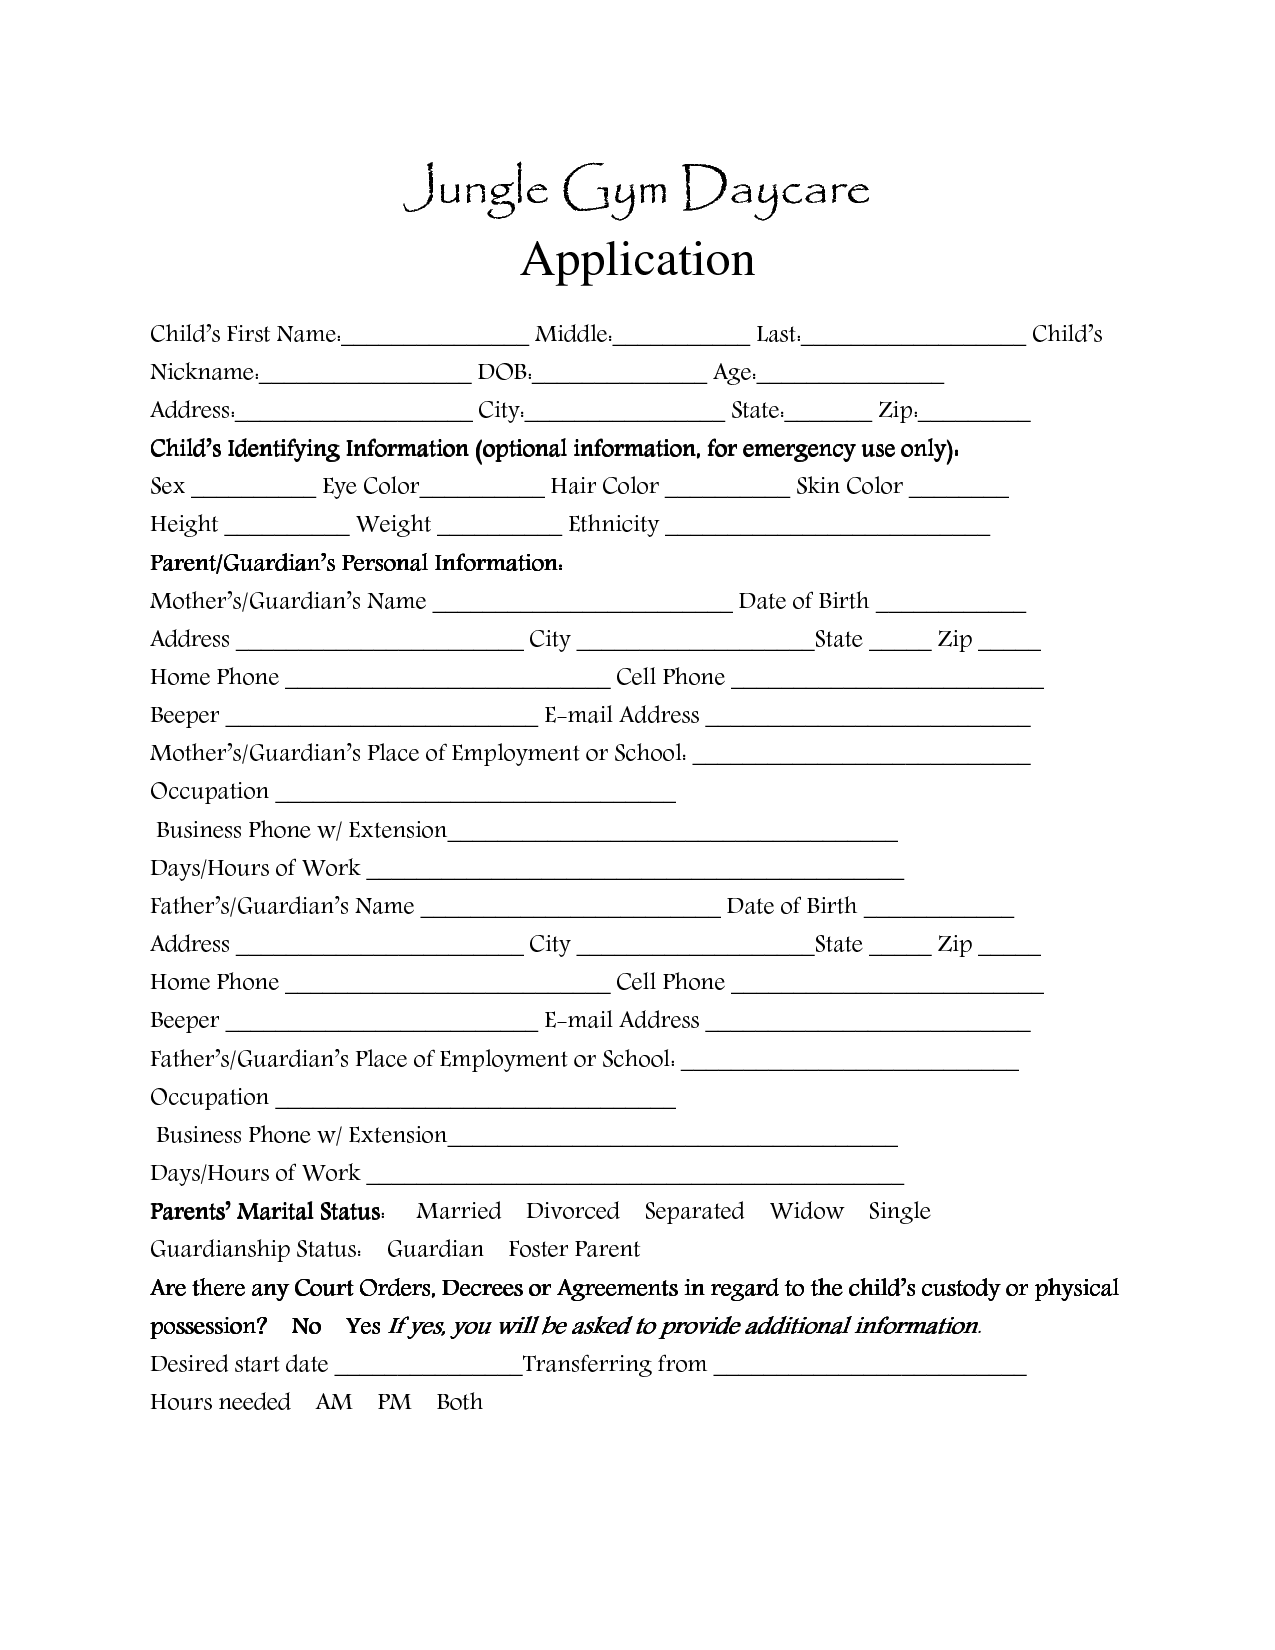 Day Care Application Forms Template  Daycare